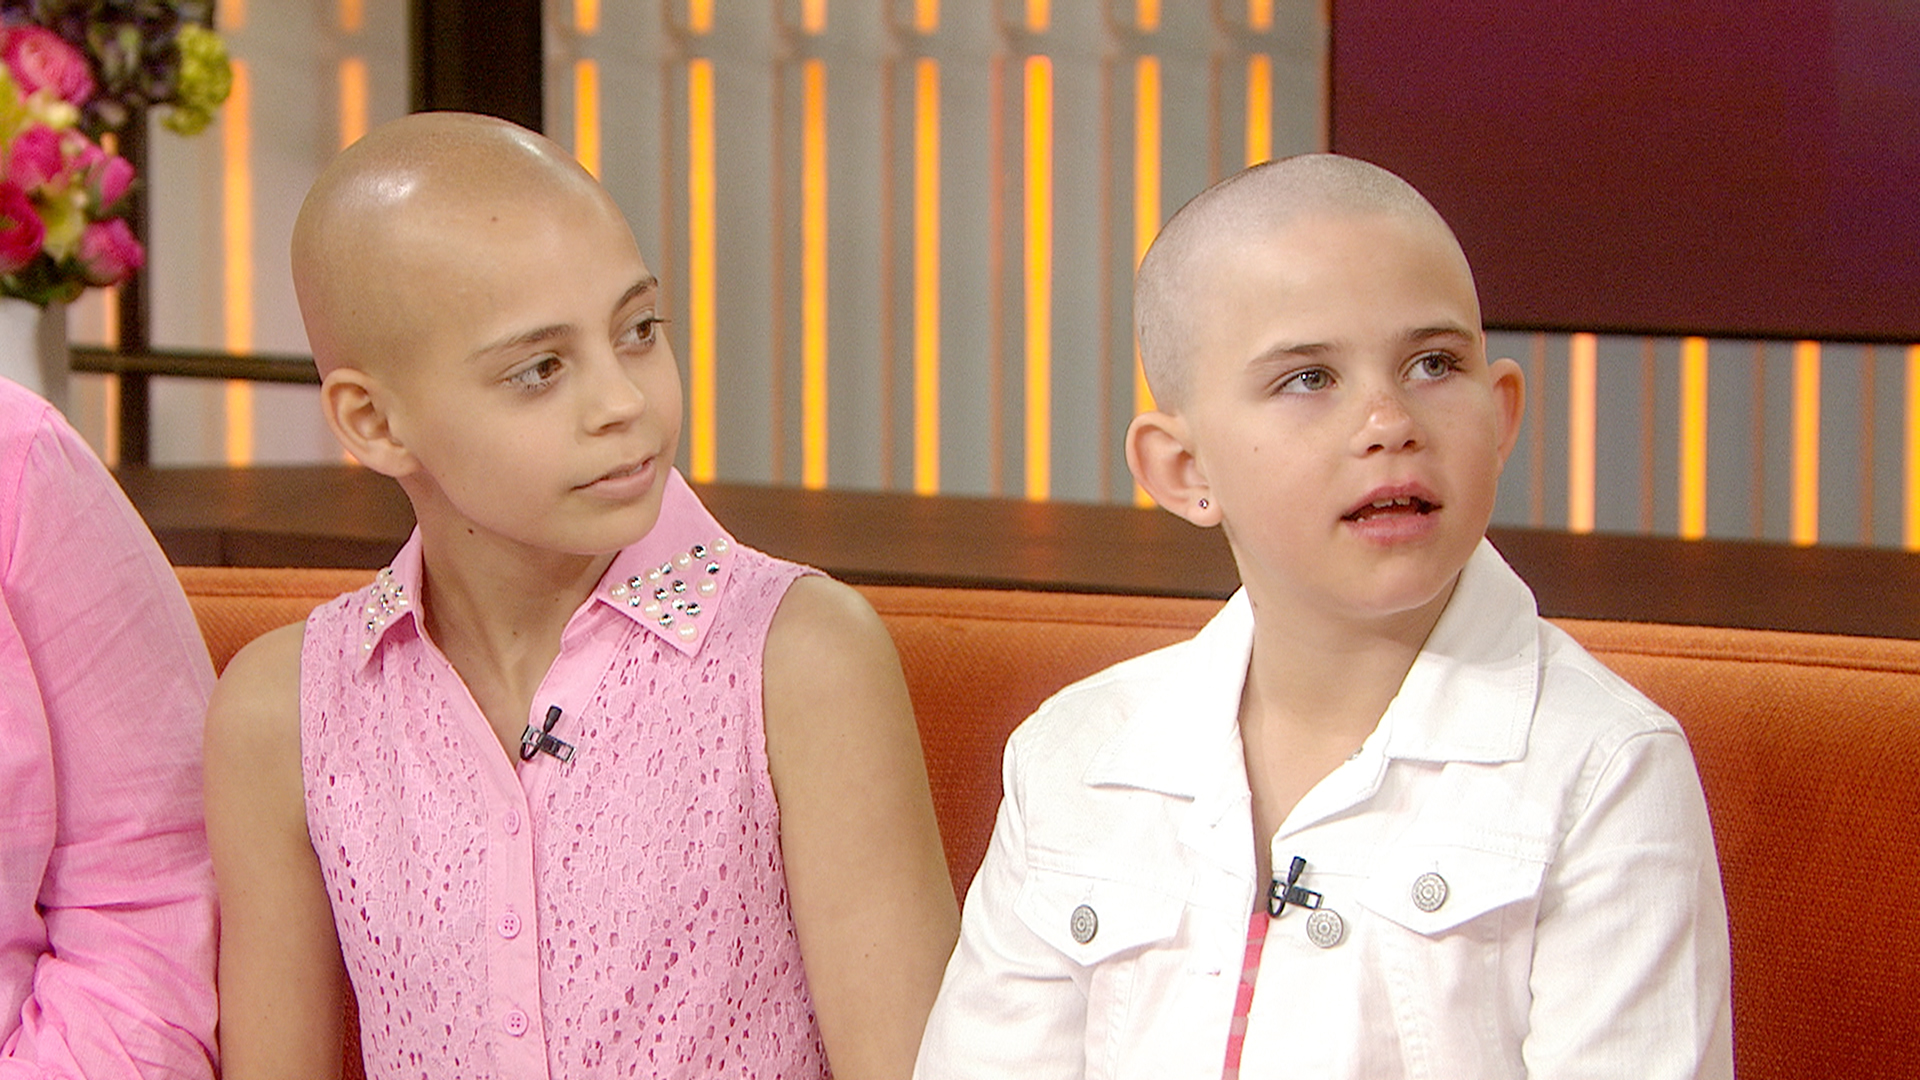 girl who shaved head for friend felt 'punished' by school